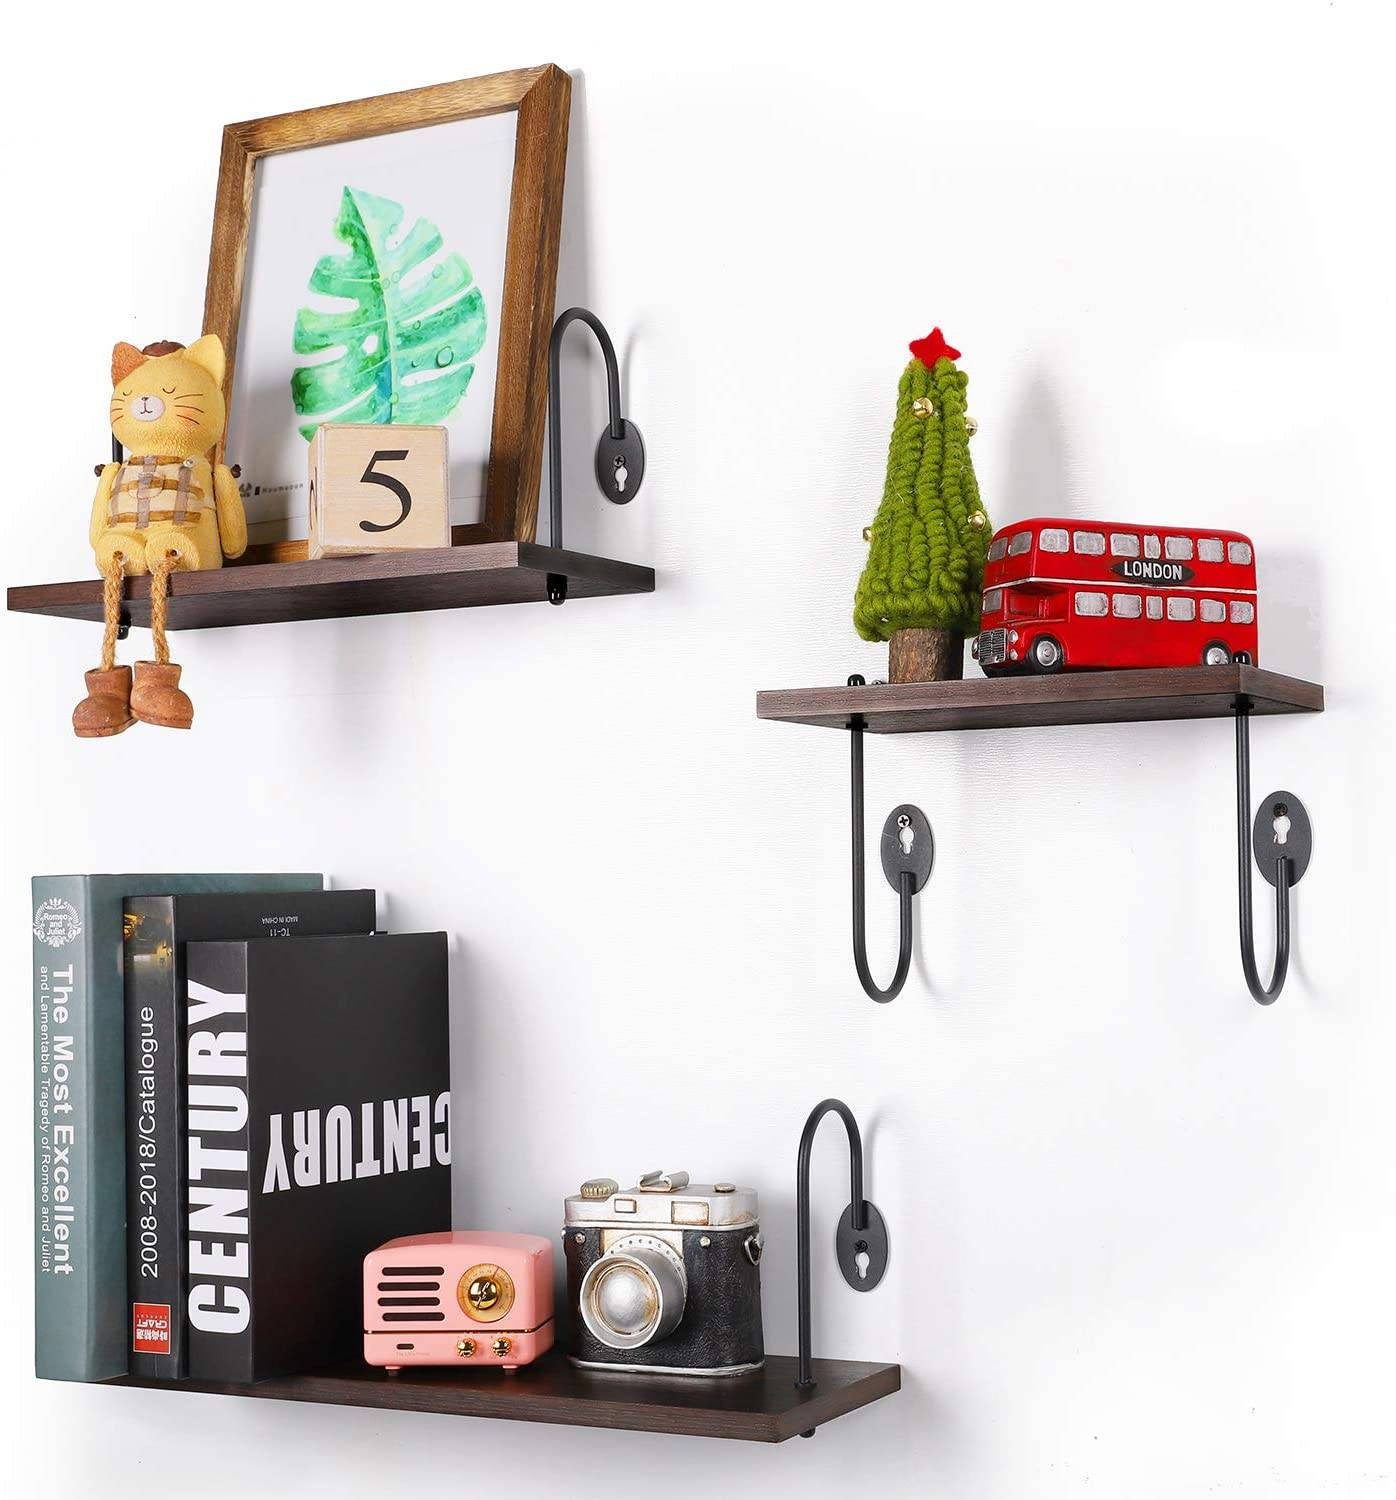 Fresh Design Decorative Kitchen Shelving Units Awesome Olakee Floating Shelves Wall Mounted Rustic Wood Wall Shelves Set Of 3 for Bedroom Bathroom Kitchen Fice Walnut